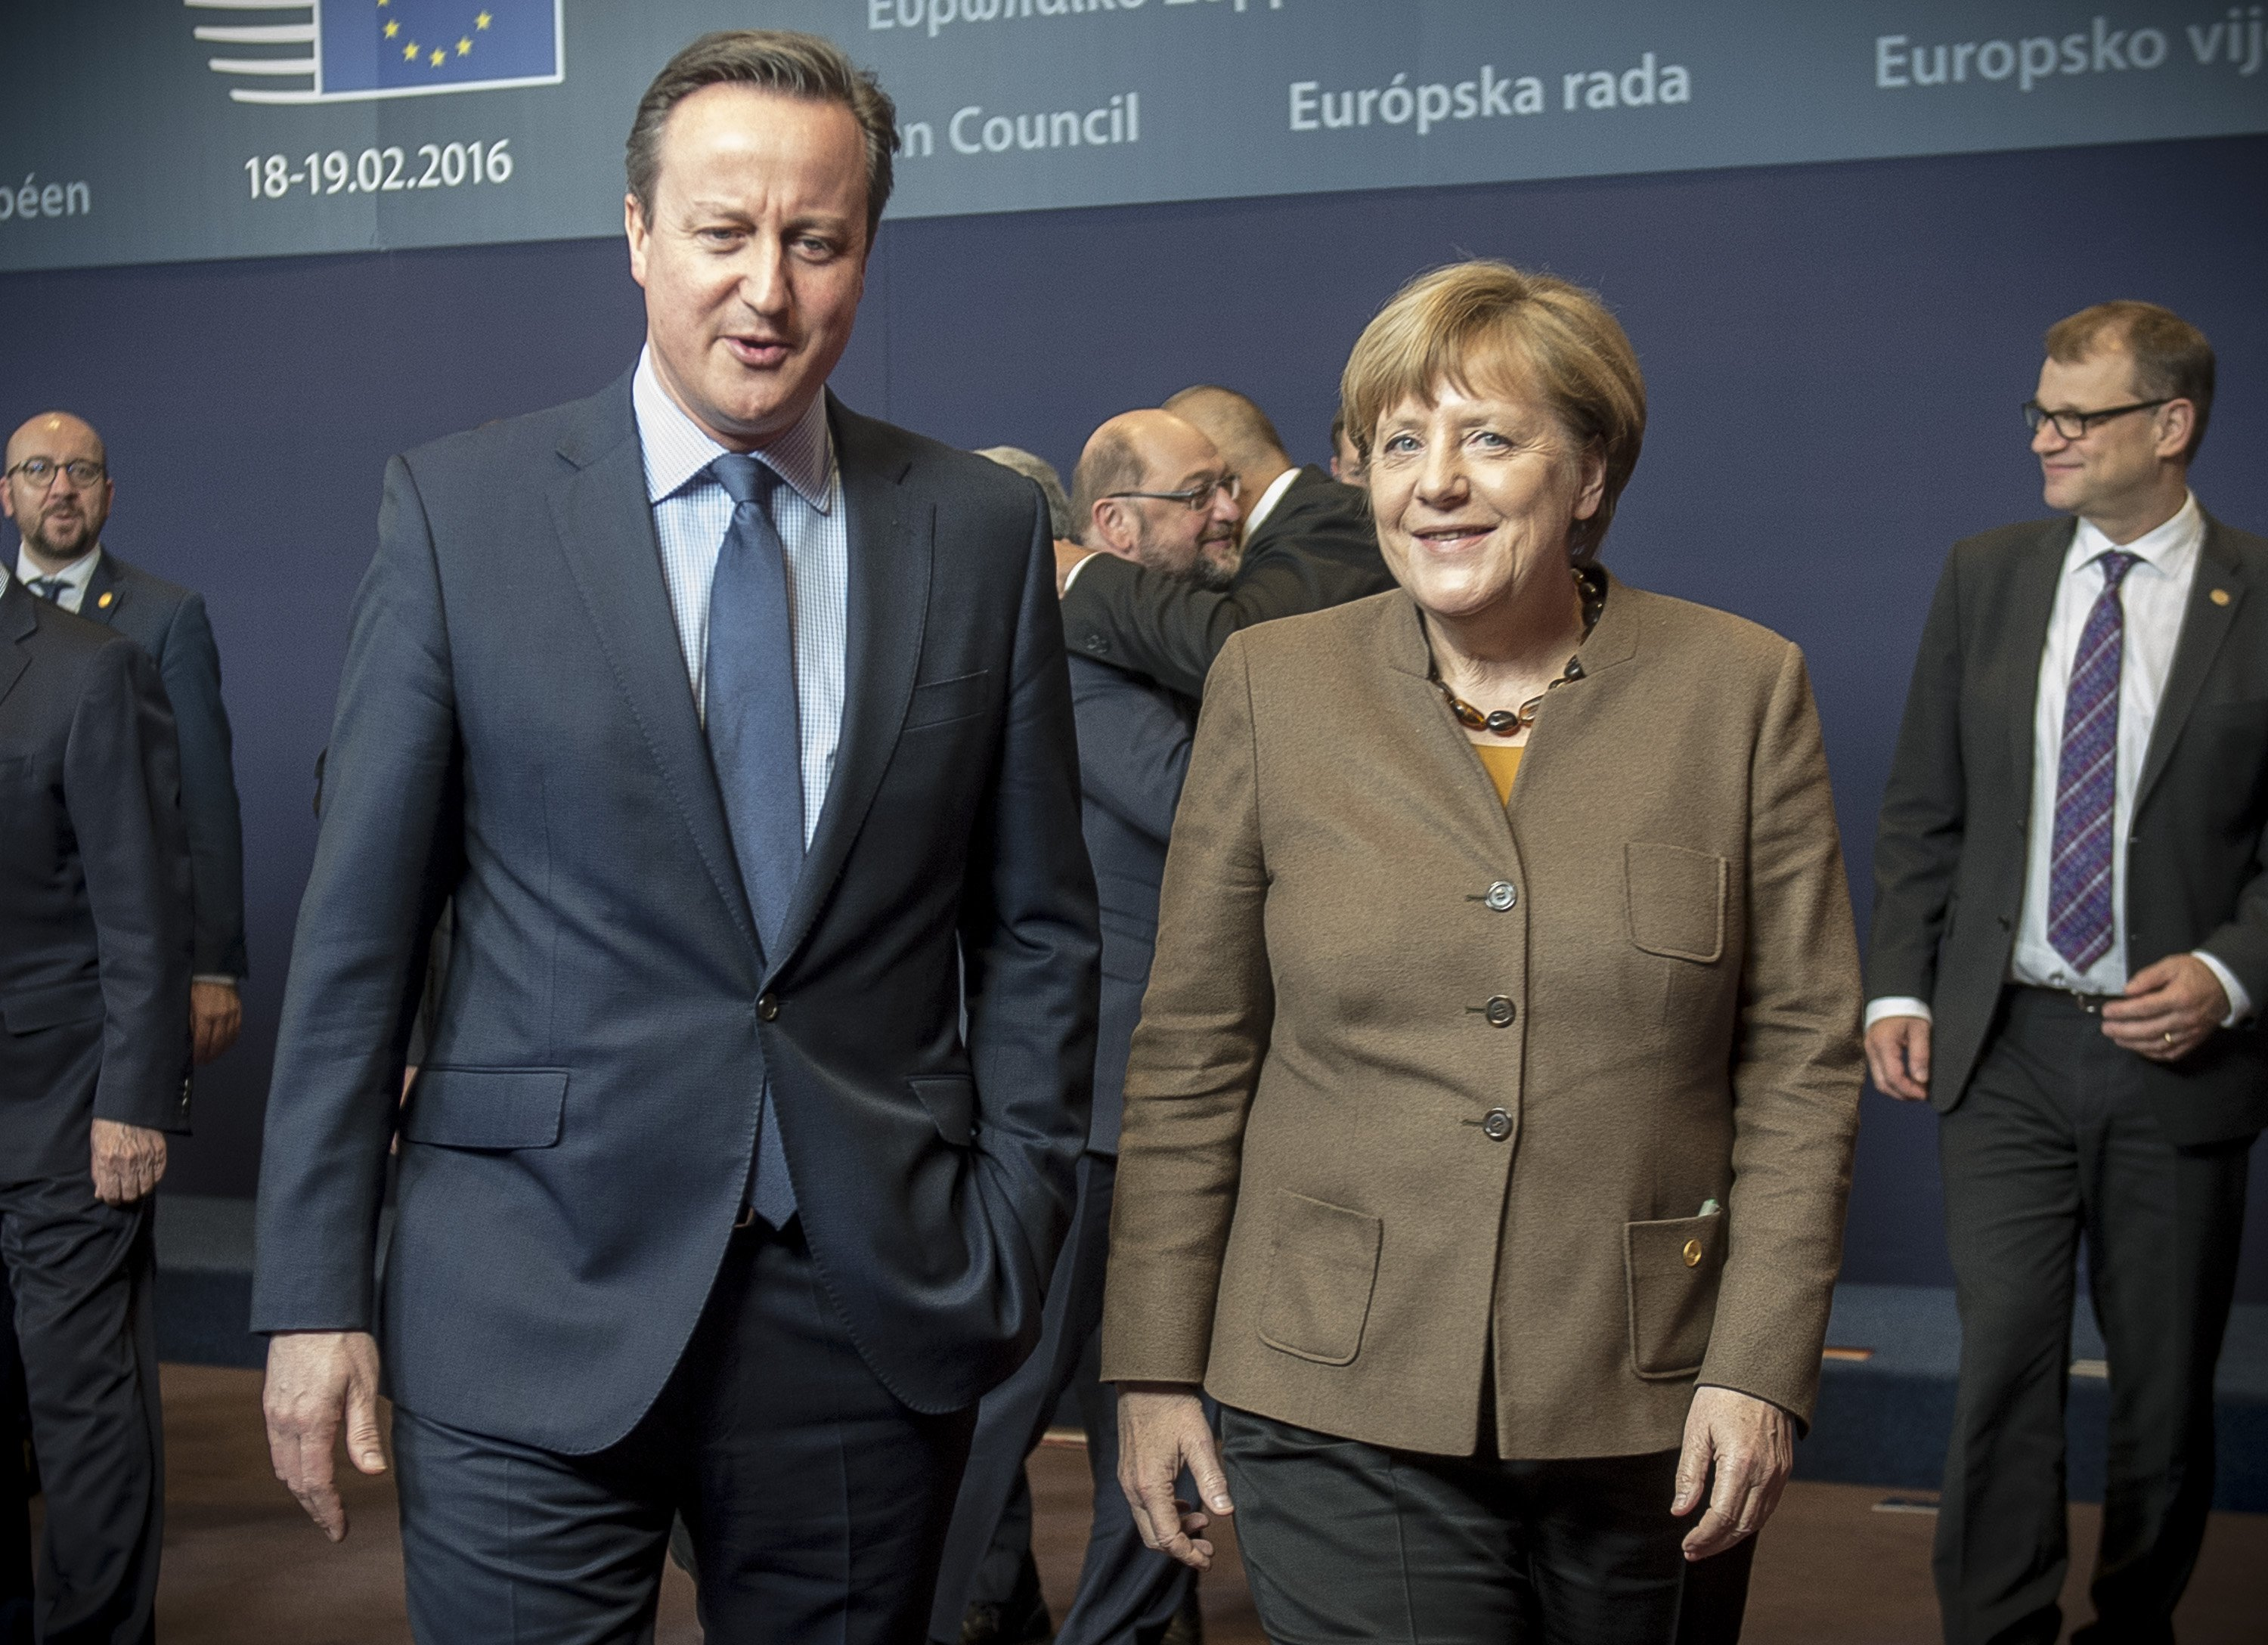 David Cameron and Angela Merkel during a EU Summit in Brussels, Belgium on Feb. 18, 2015.